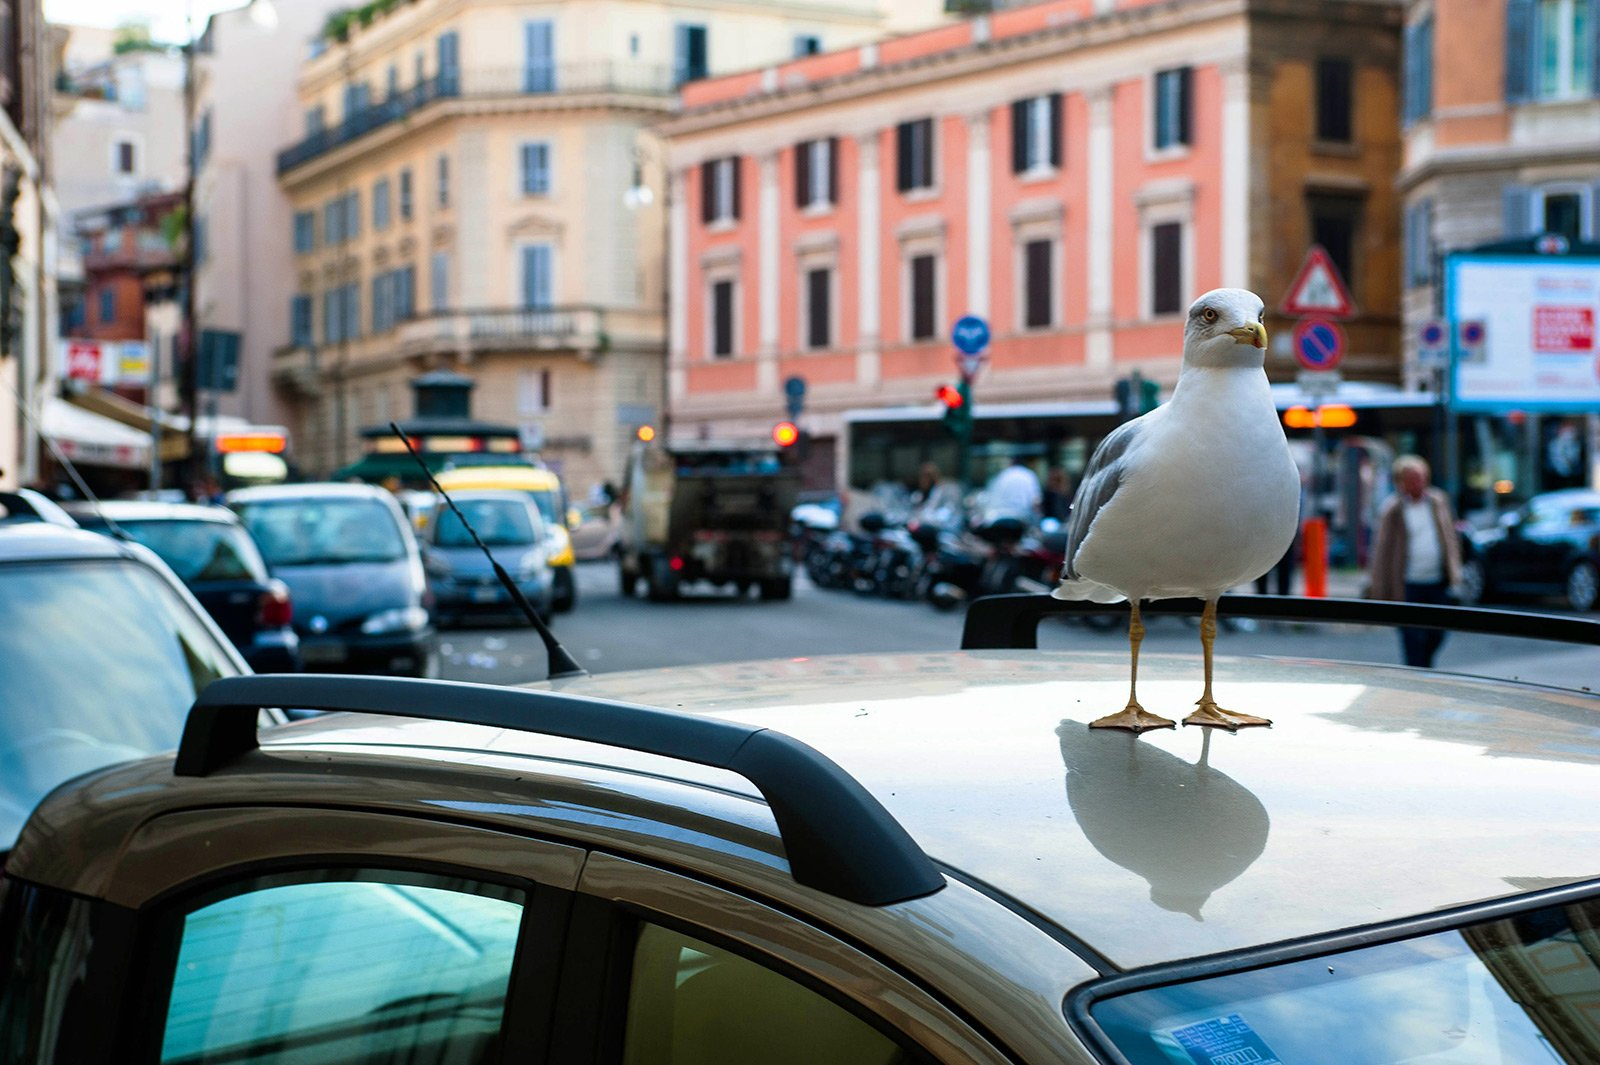 How to feed the seagulls near the Tiber in Rome